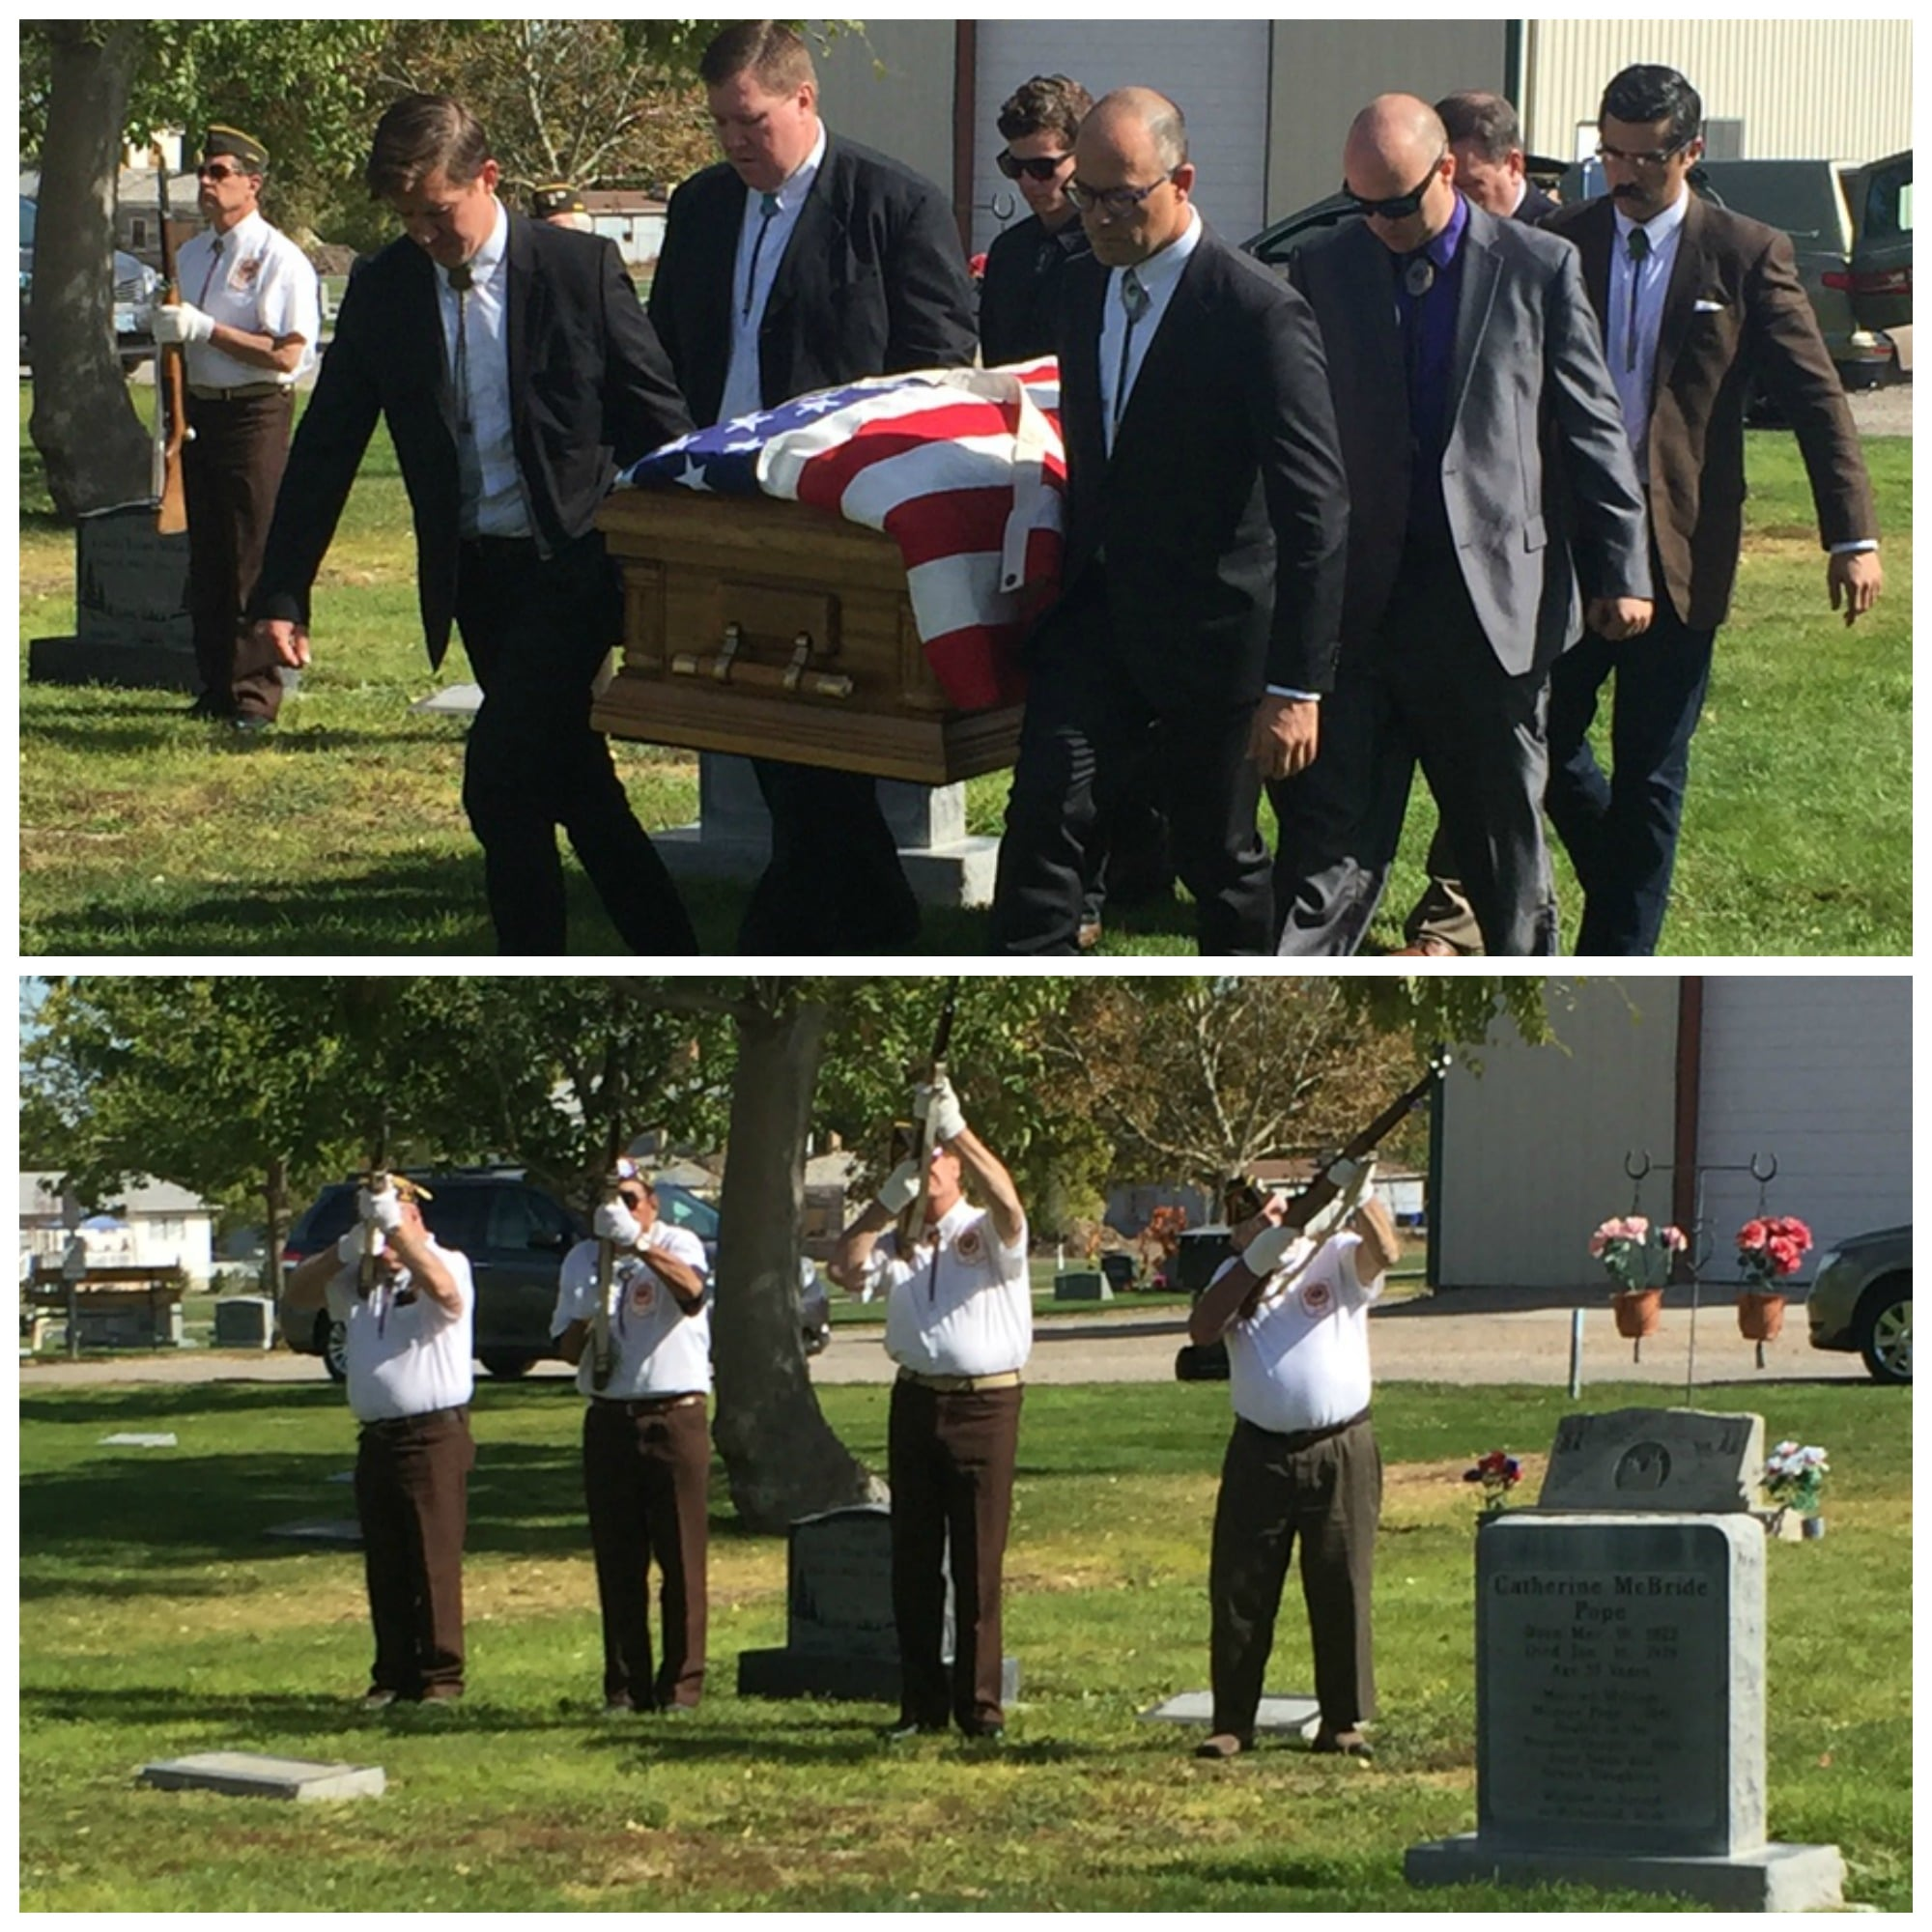 William M. funeral.